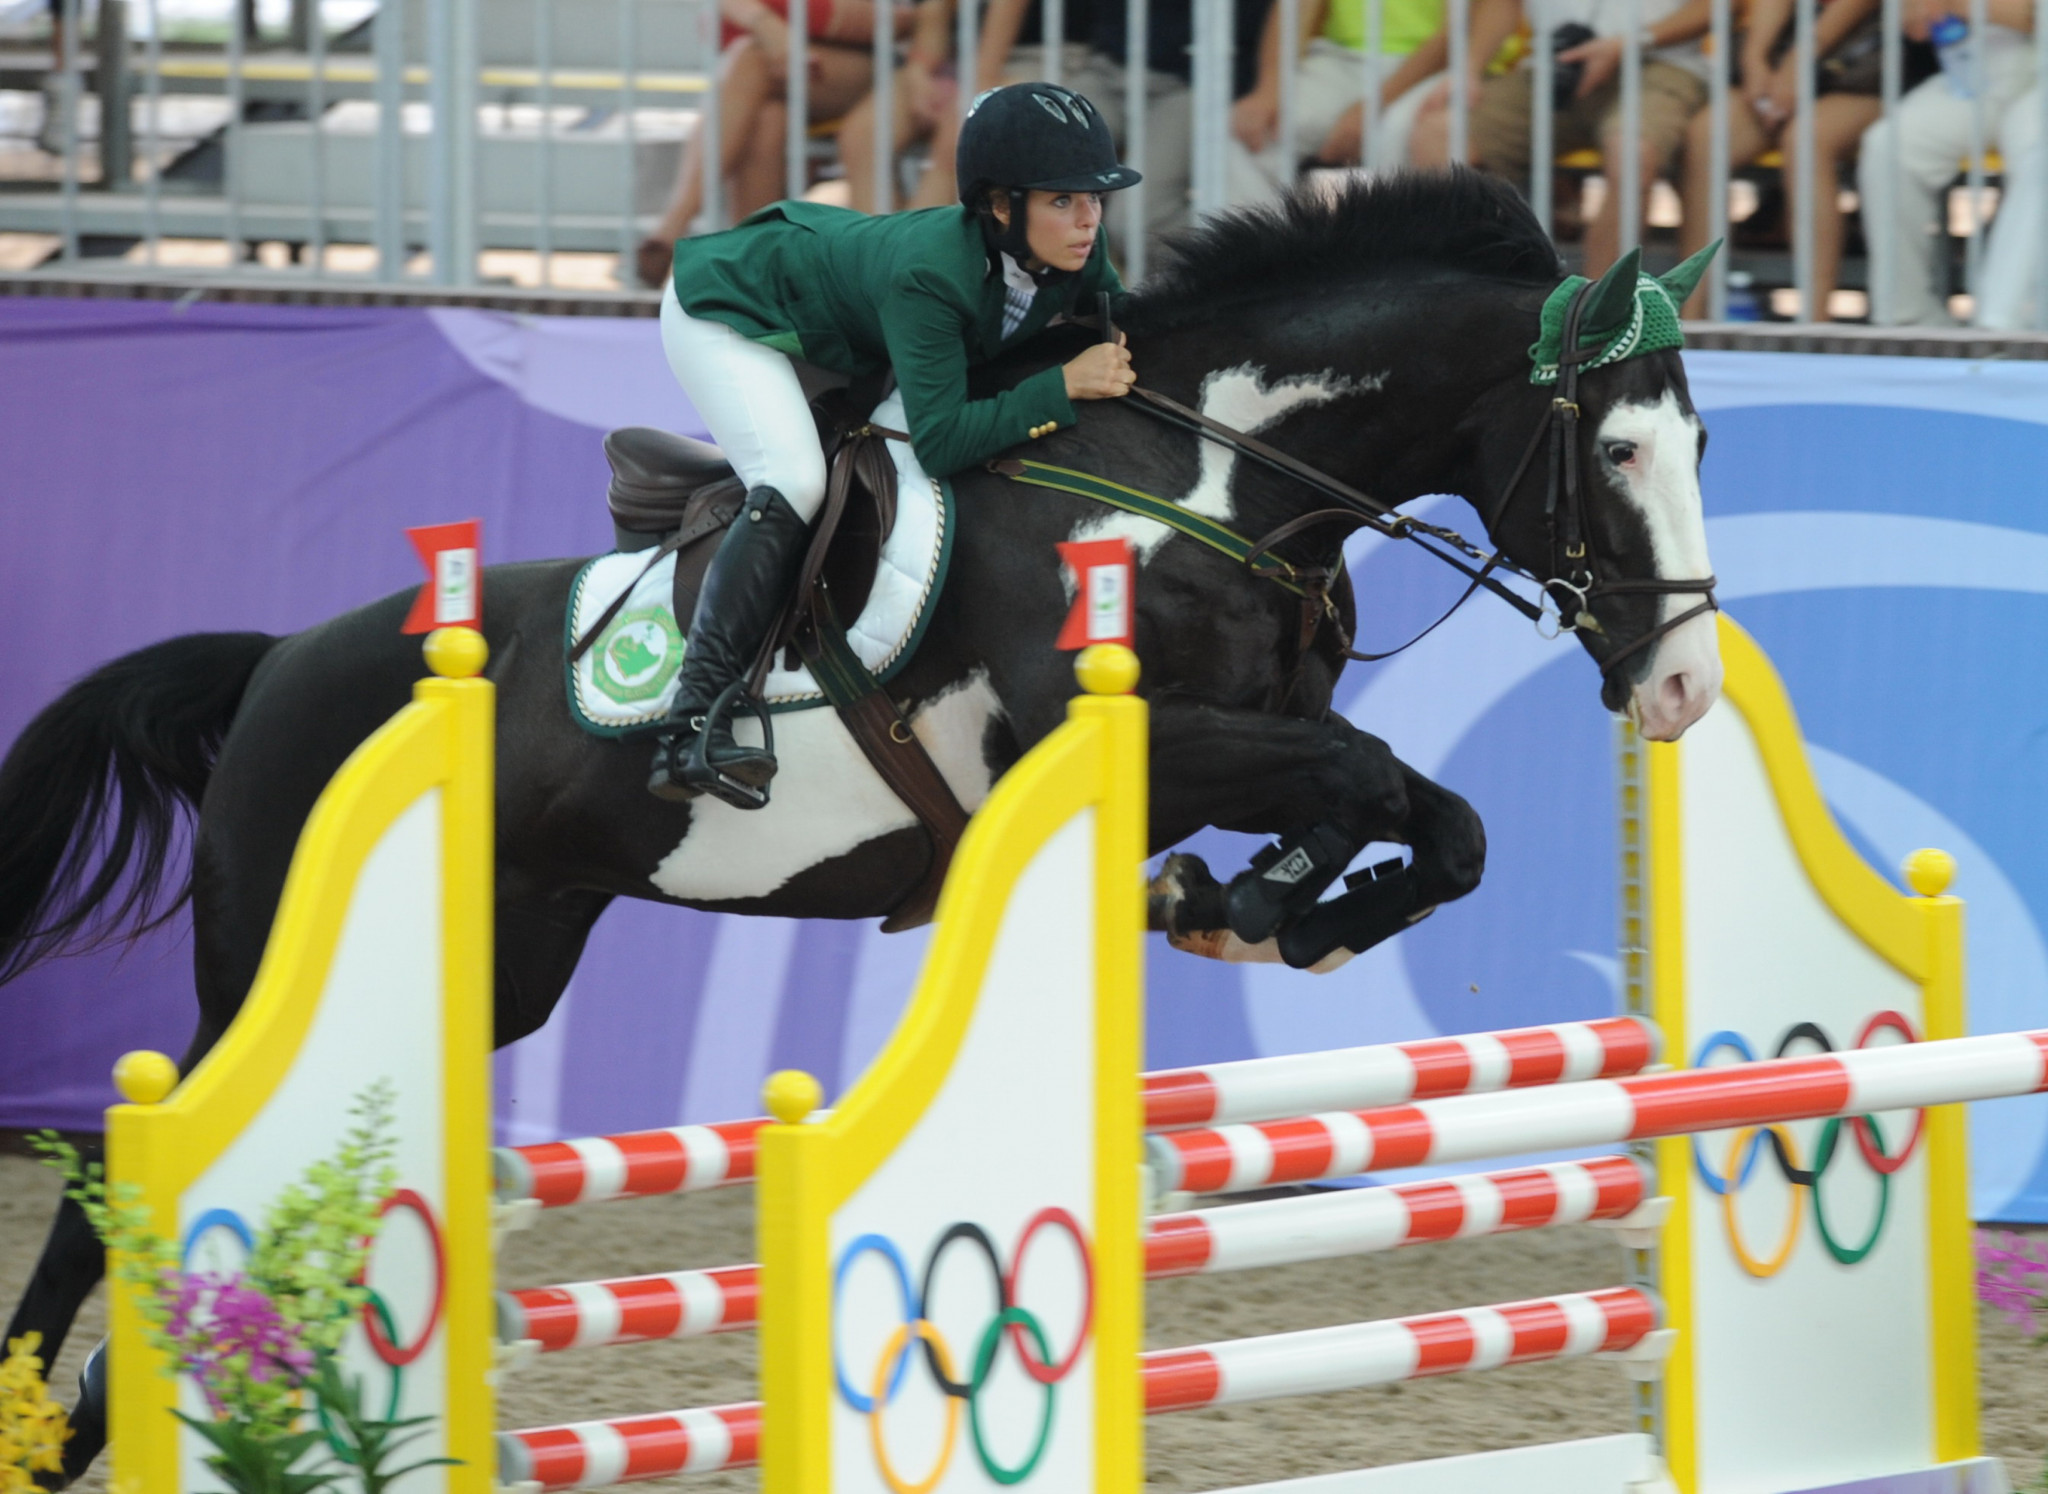 Dalma Malhas was Saudi Arabia's first female medal winner at the Youth Olympic Games when she clinched bronze at Singapore 2010 ©Getty Images